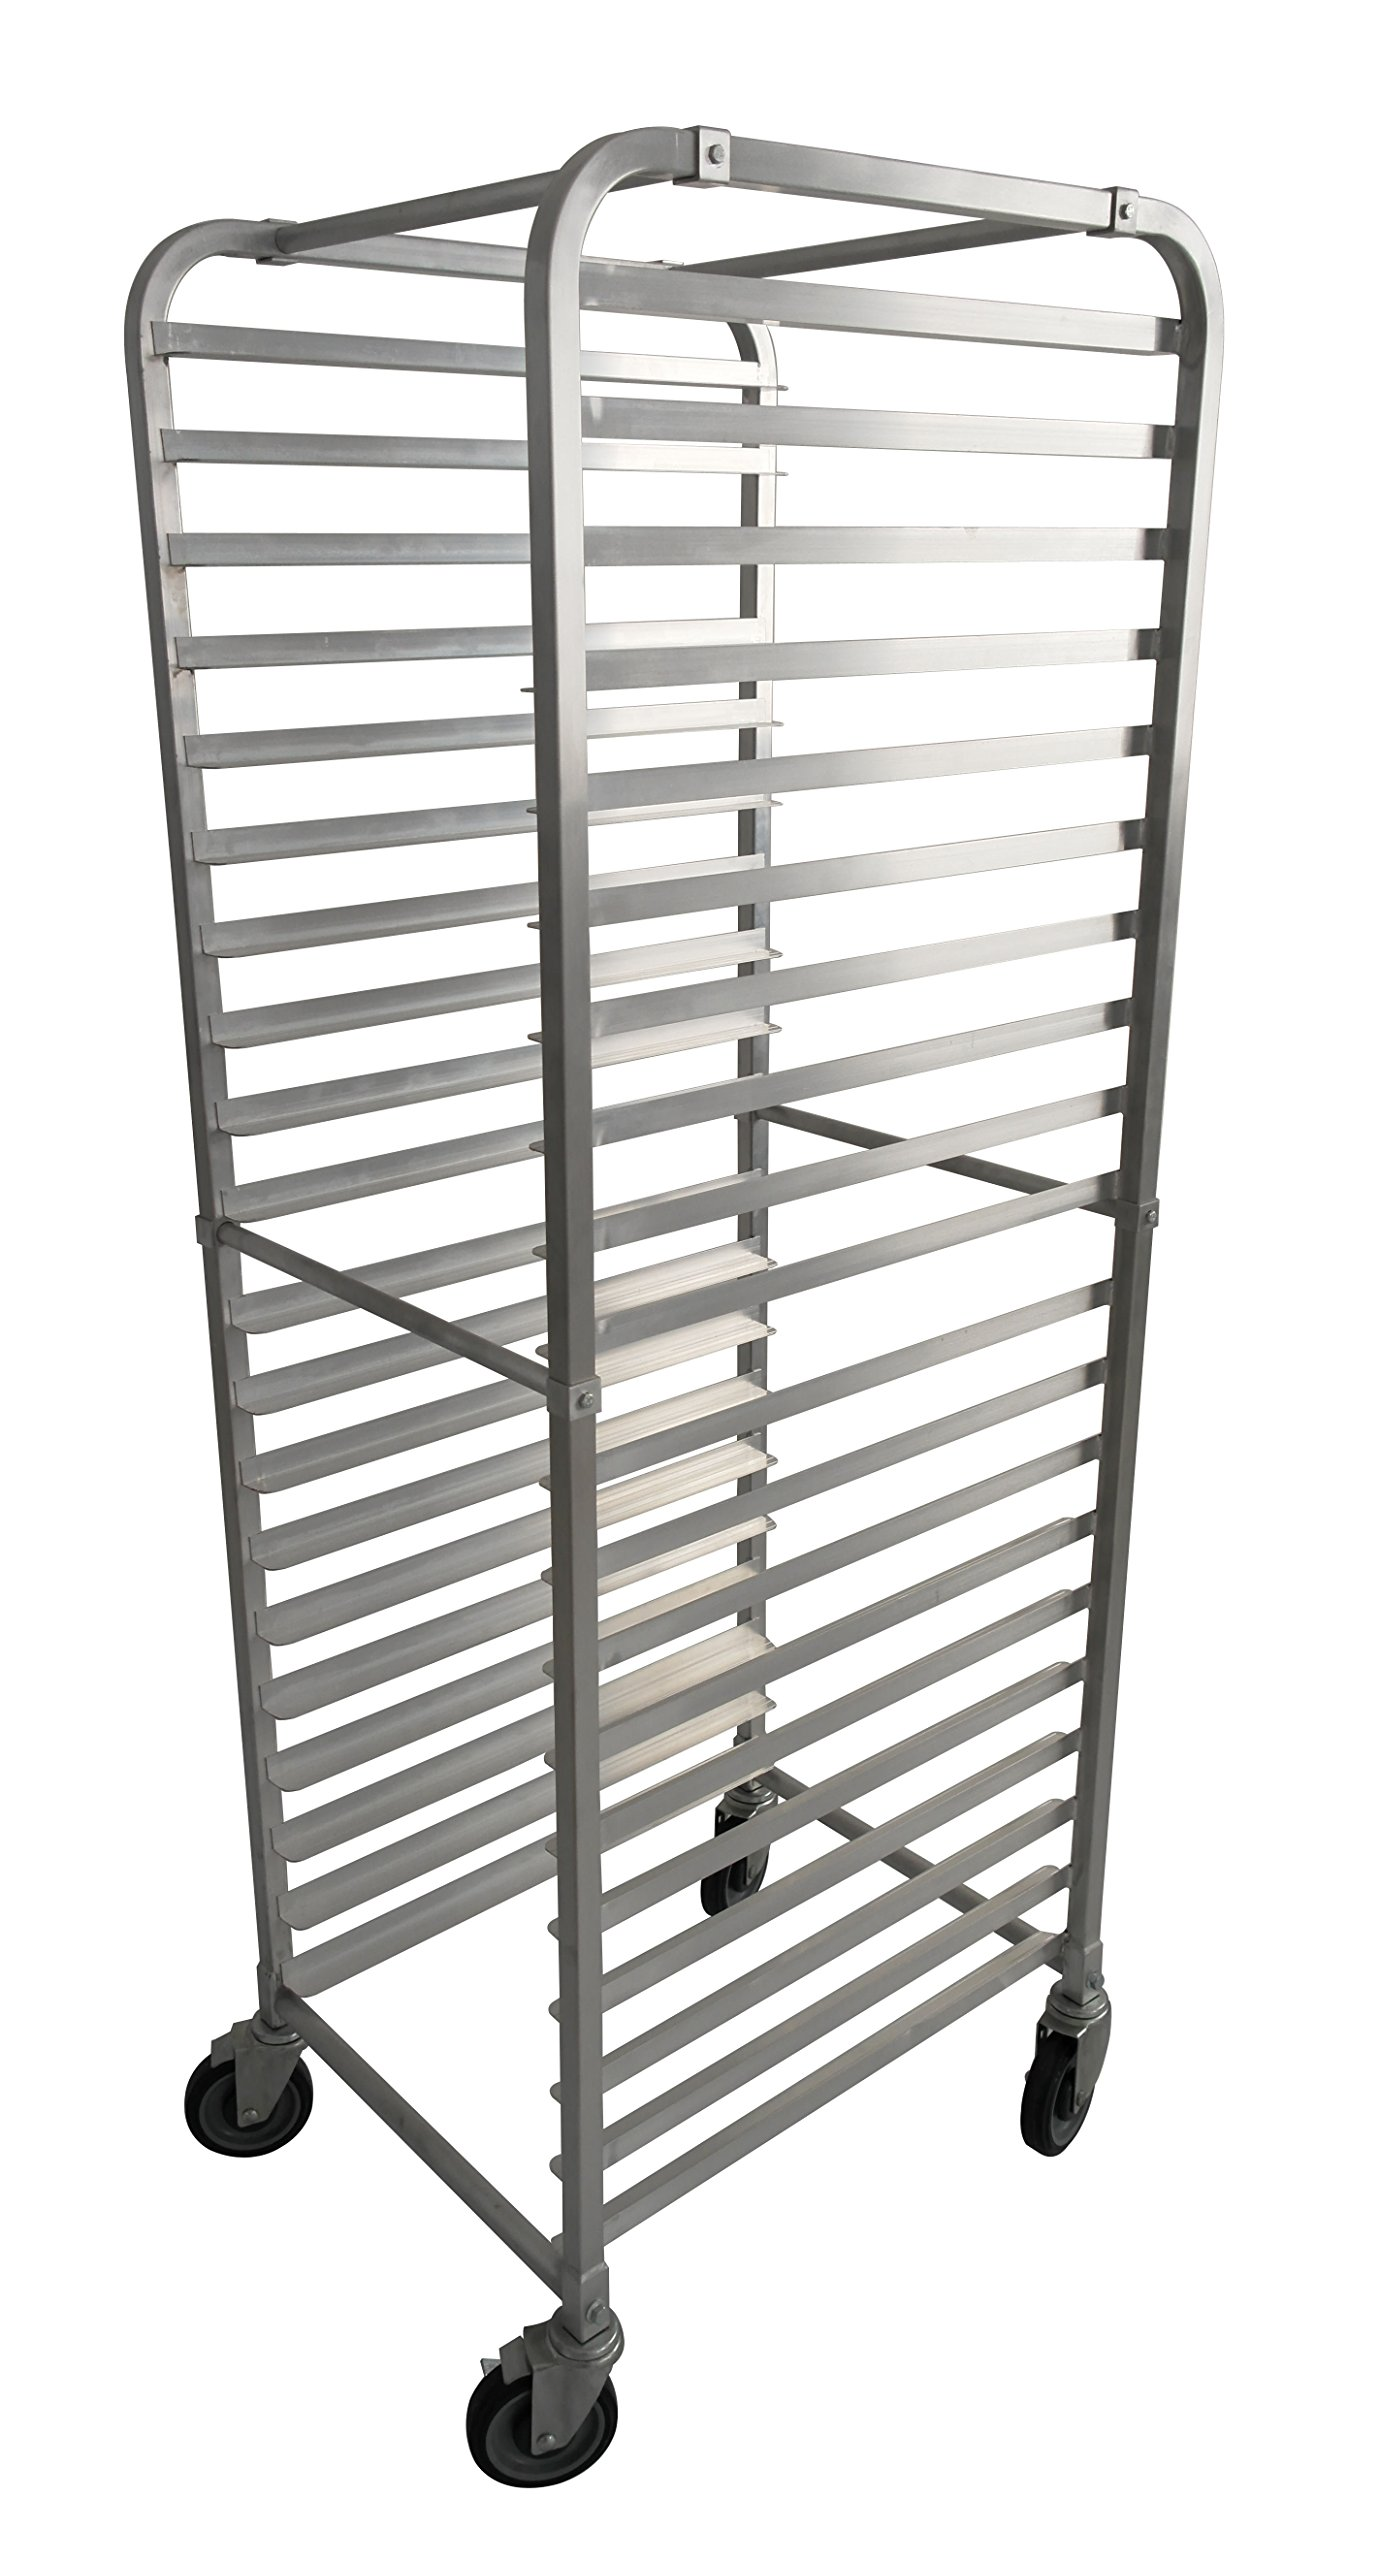 JET Aluminum 20 Tier Commercial Kitchen Baking Bun Pan Rack Holds 20 Full Size or 40 Half Size Sheet Pans with 5-inch Swivel Casters and Easy Assembly, 20.25 x 26 x 69-inch, Silver